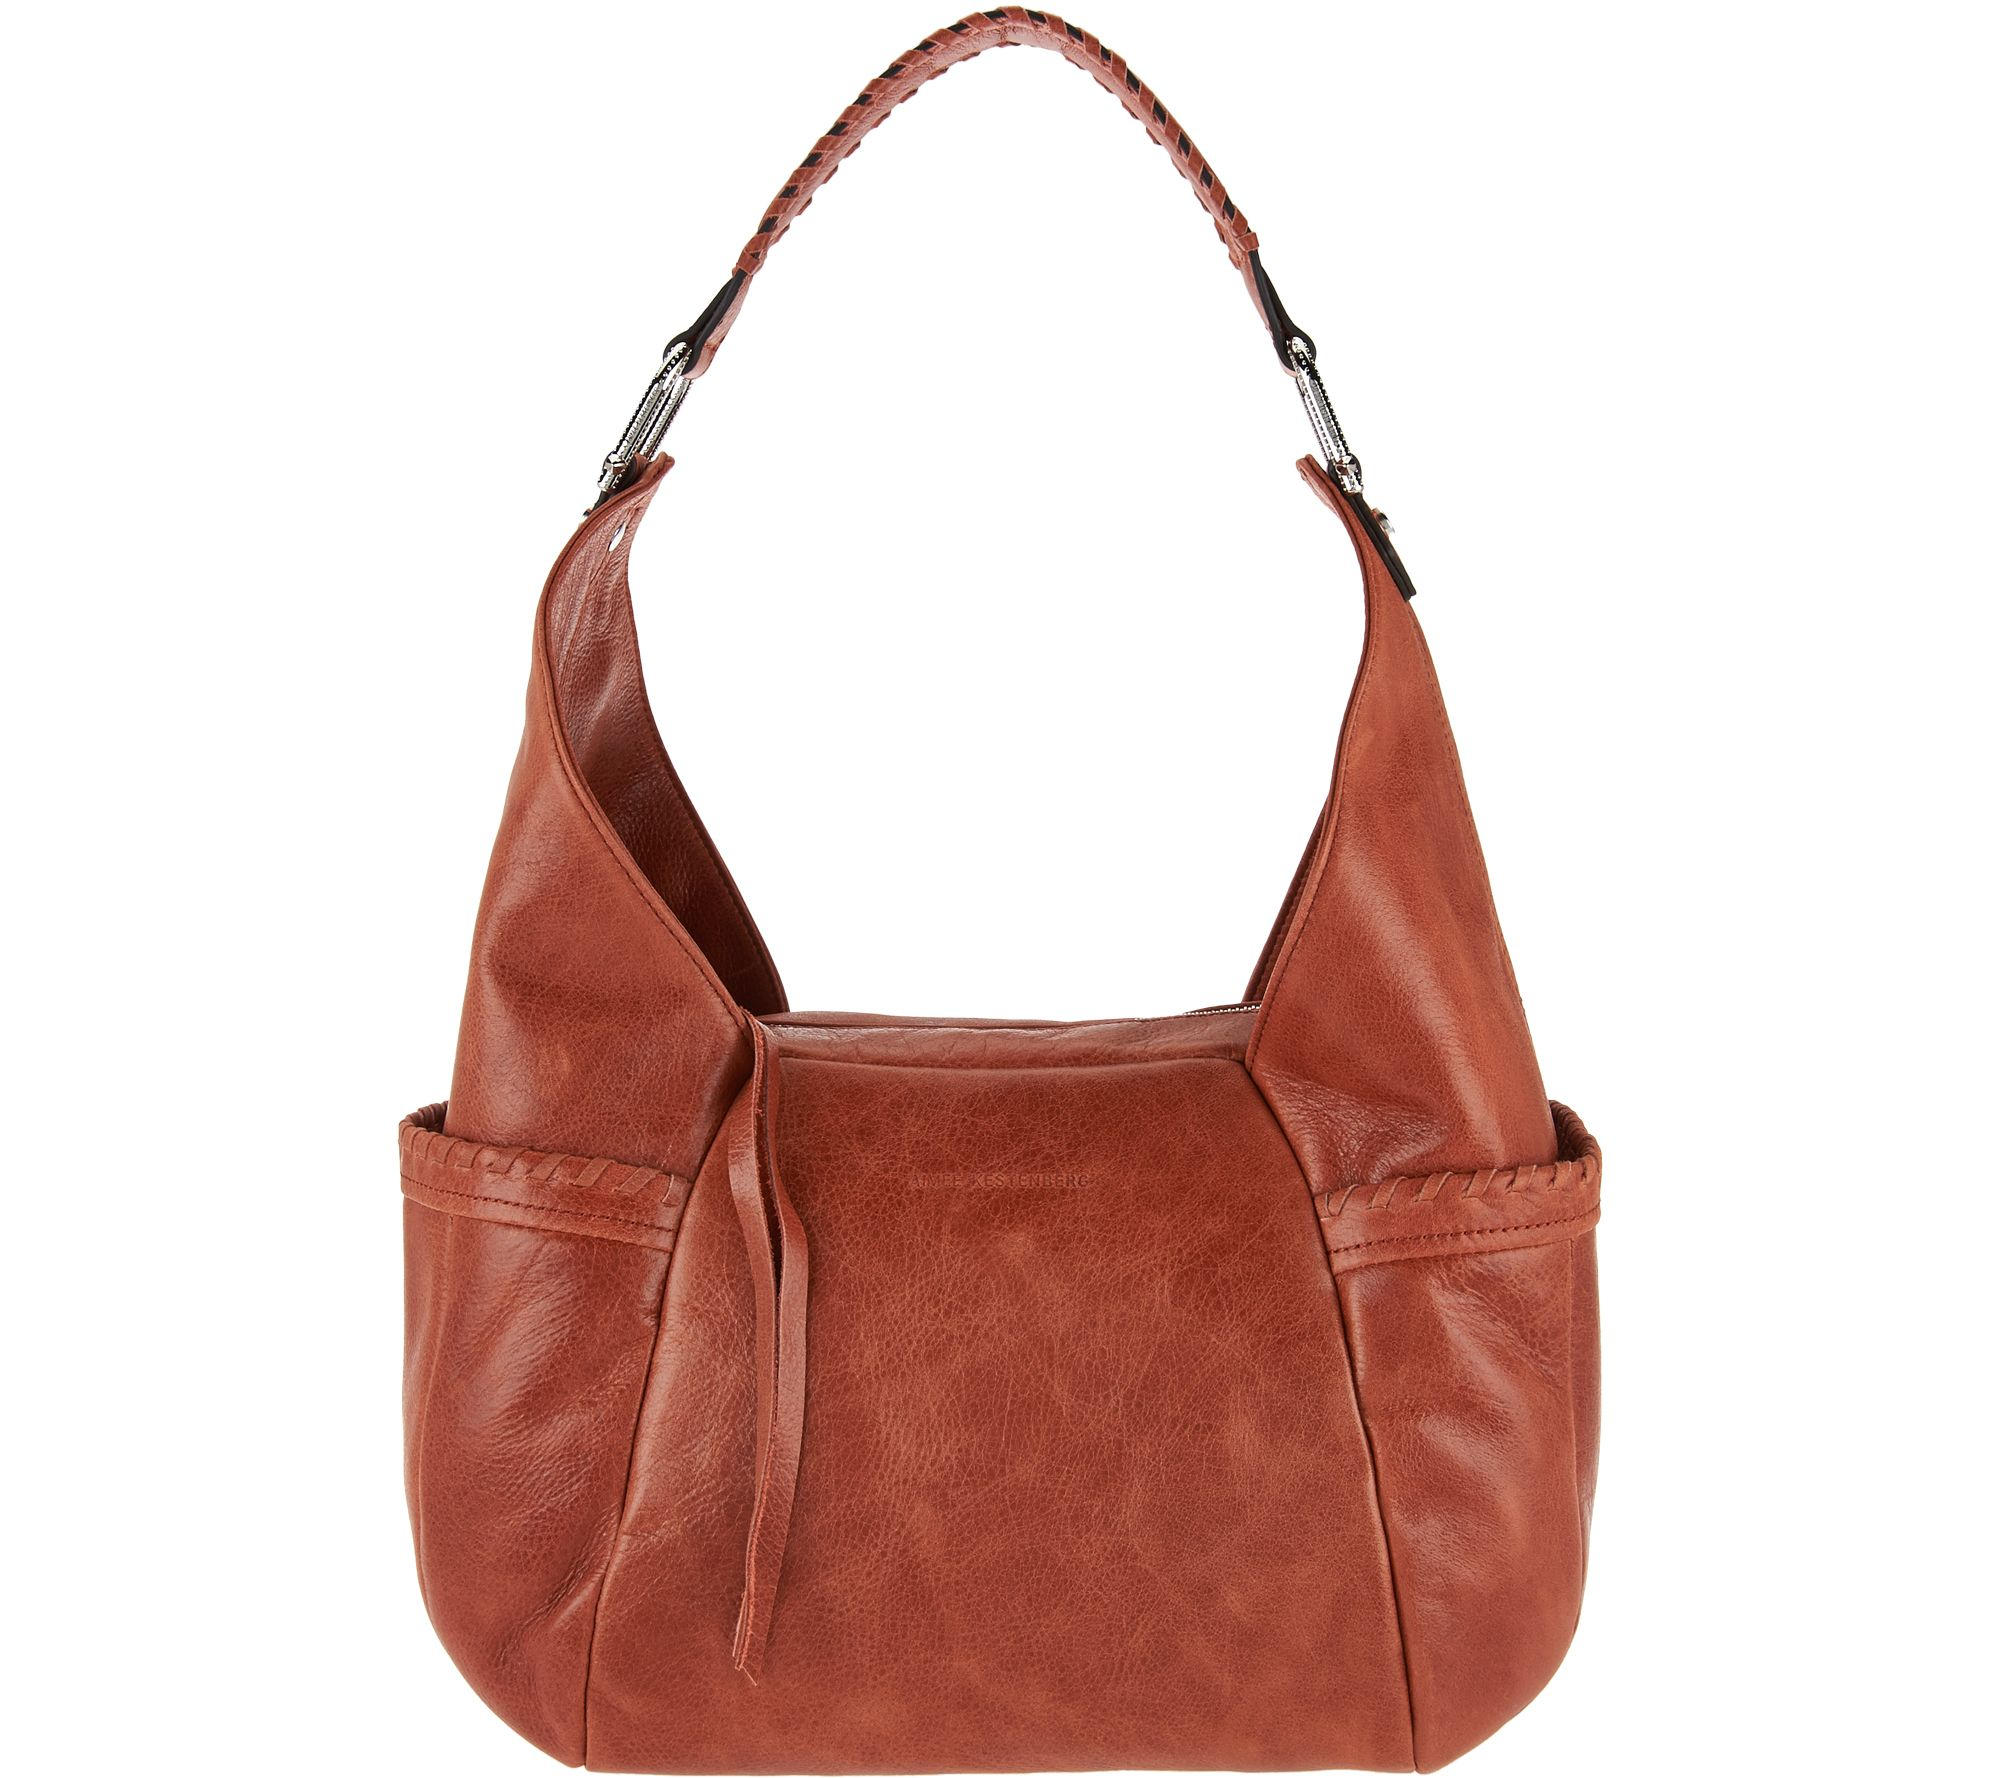 hobo bag aimee kestenberg vintage leather triple entry hobo- laredo - a282569 qjbryie